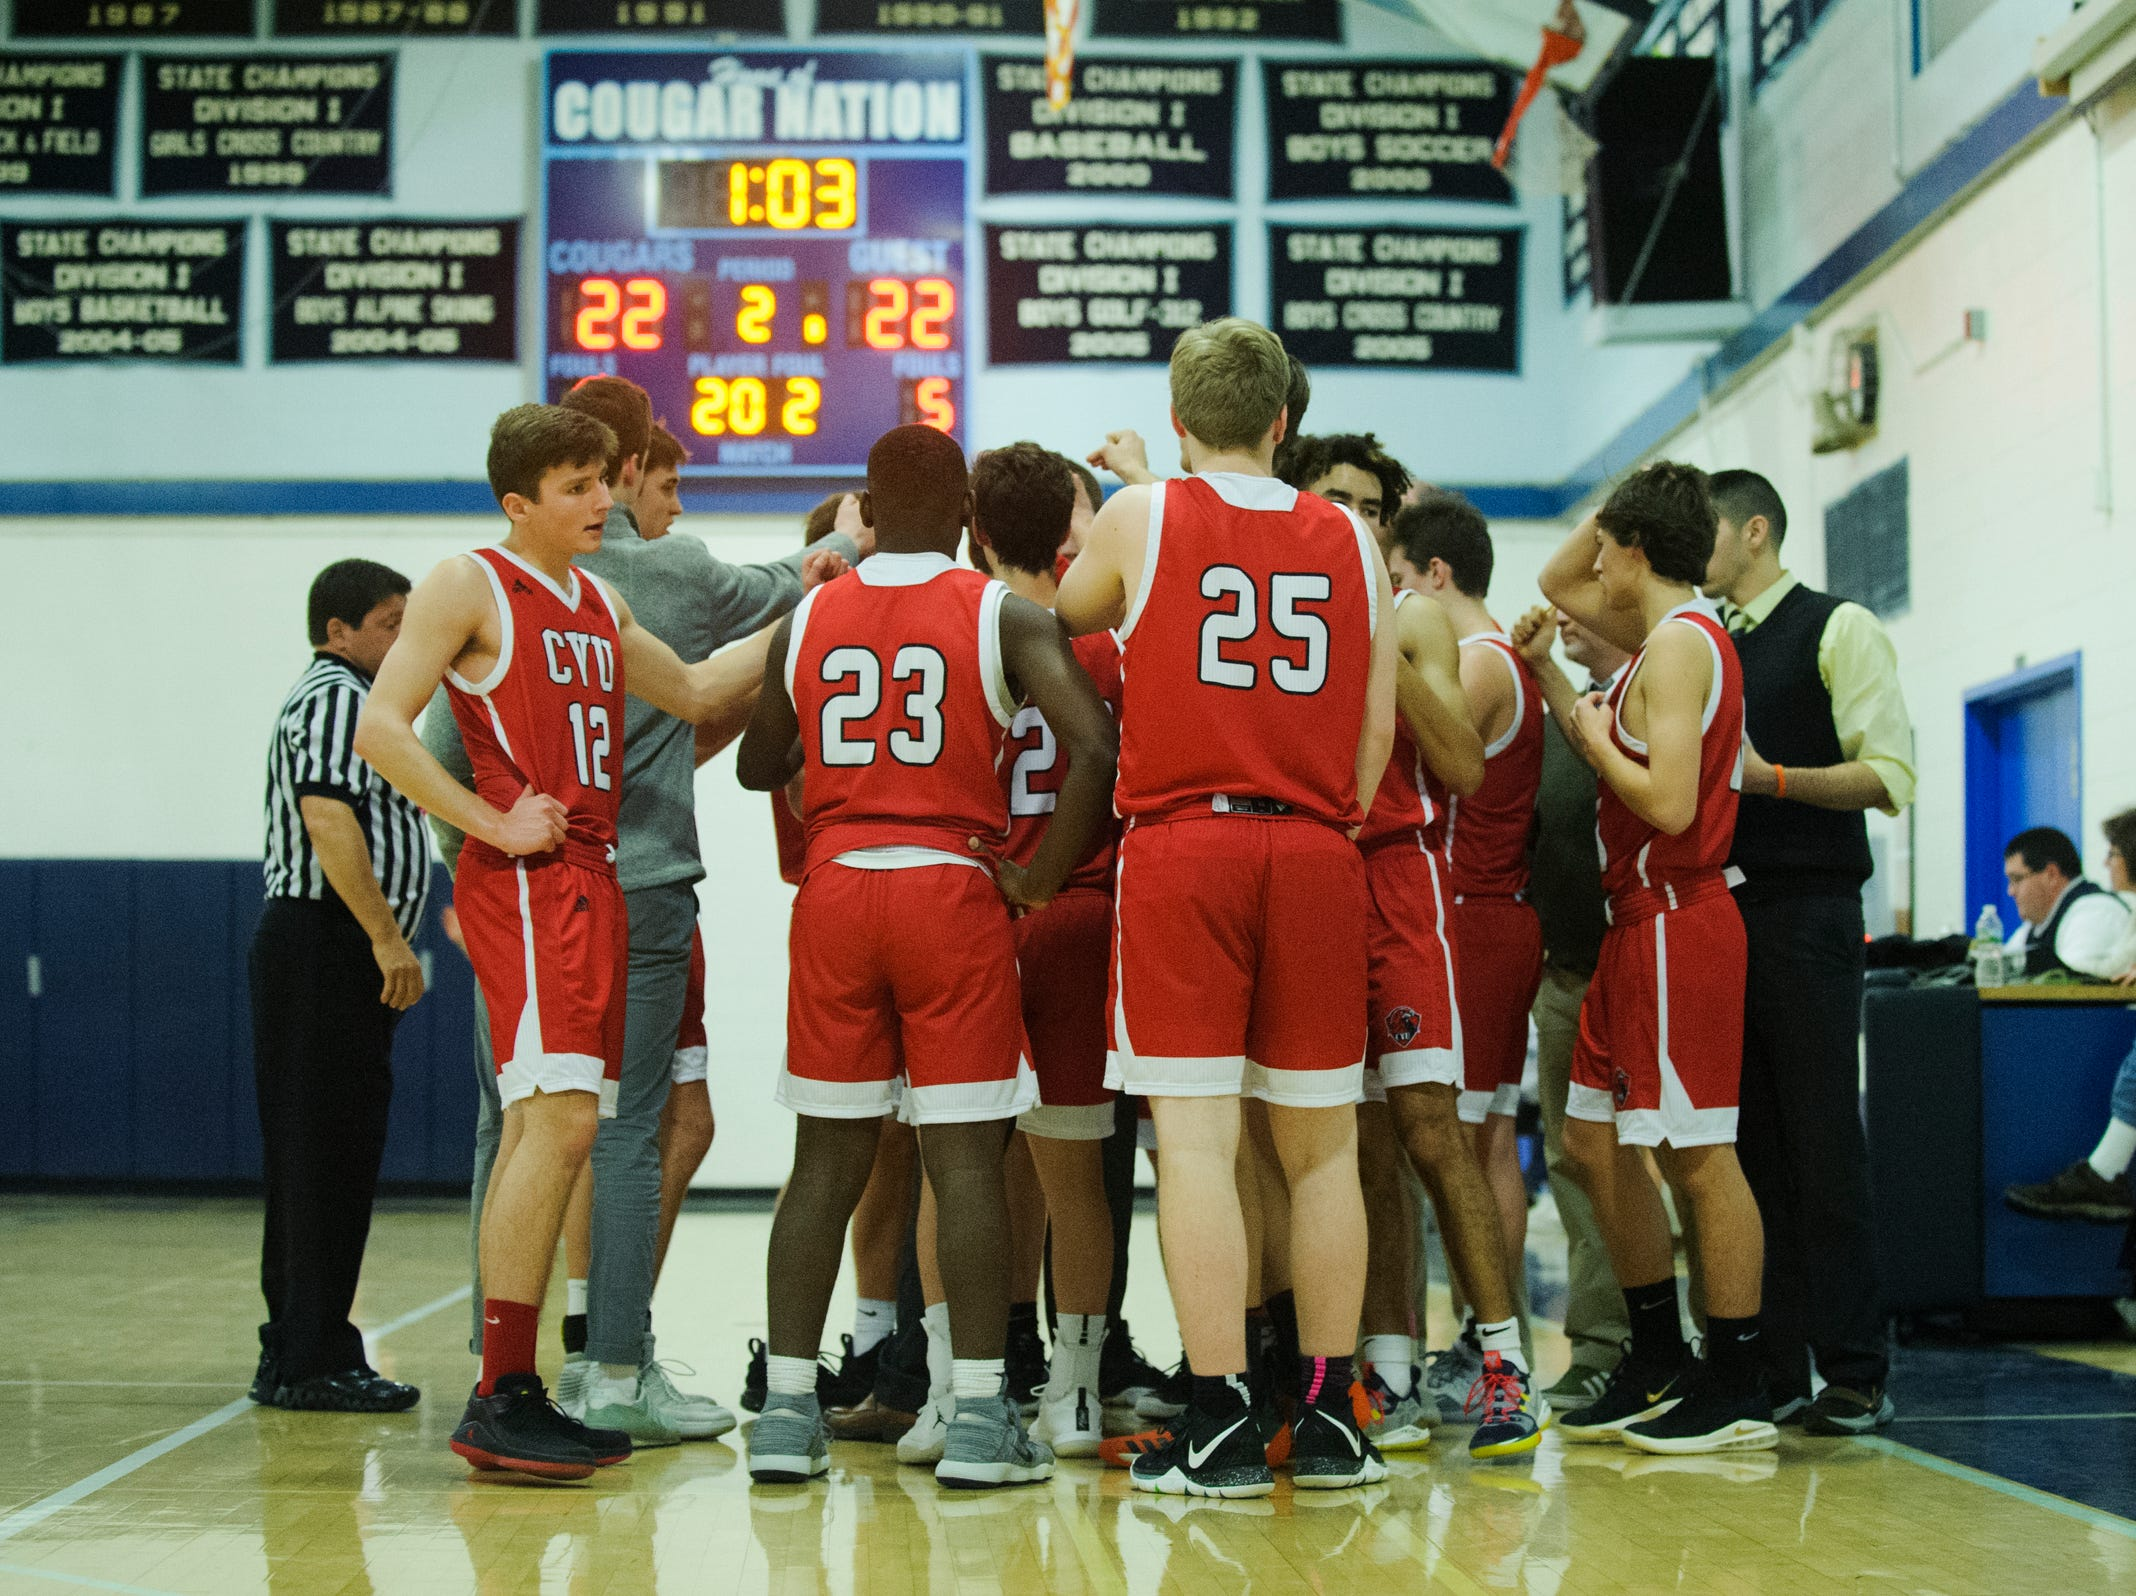 CVU huddles together during the boys basketball game between the Champlain Valley Union Redhawks and the Mount Mansfield Cougars at MMU High School on Tuesday night January 22, 2019 in Jericho.